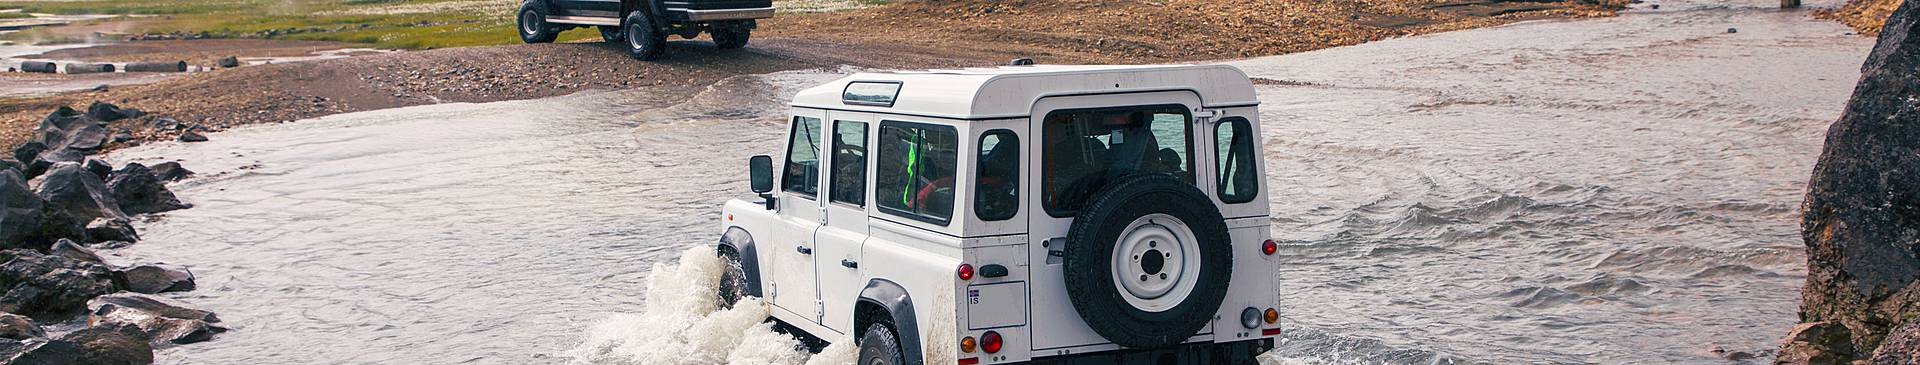 Iceland jeep tours